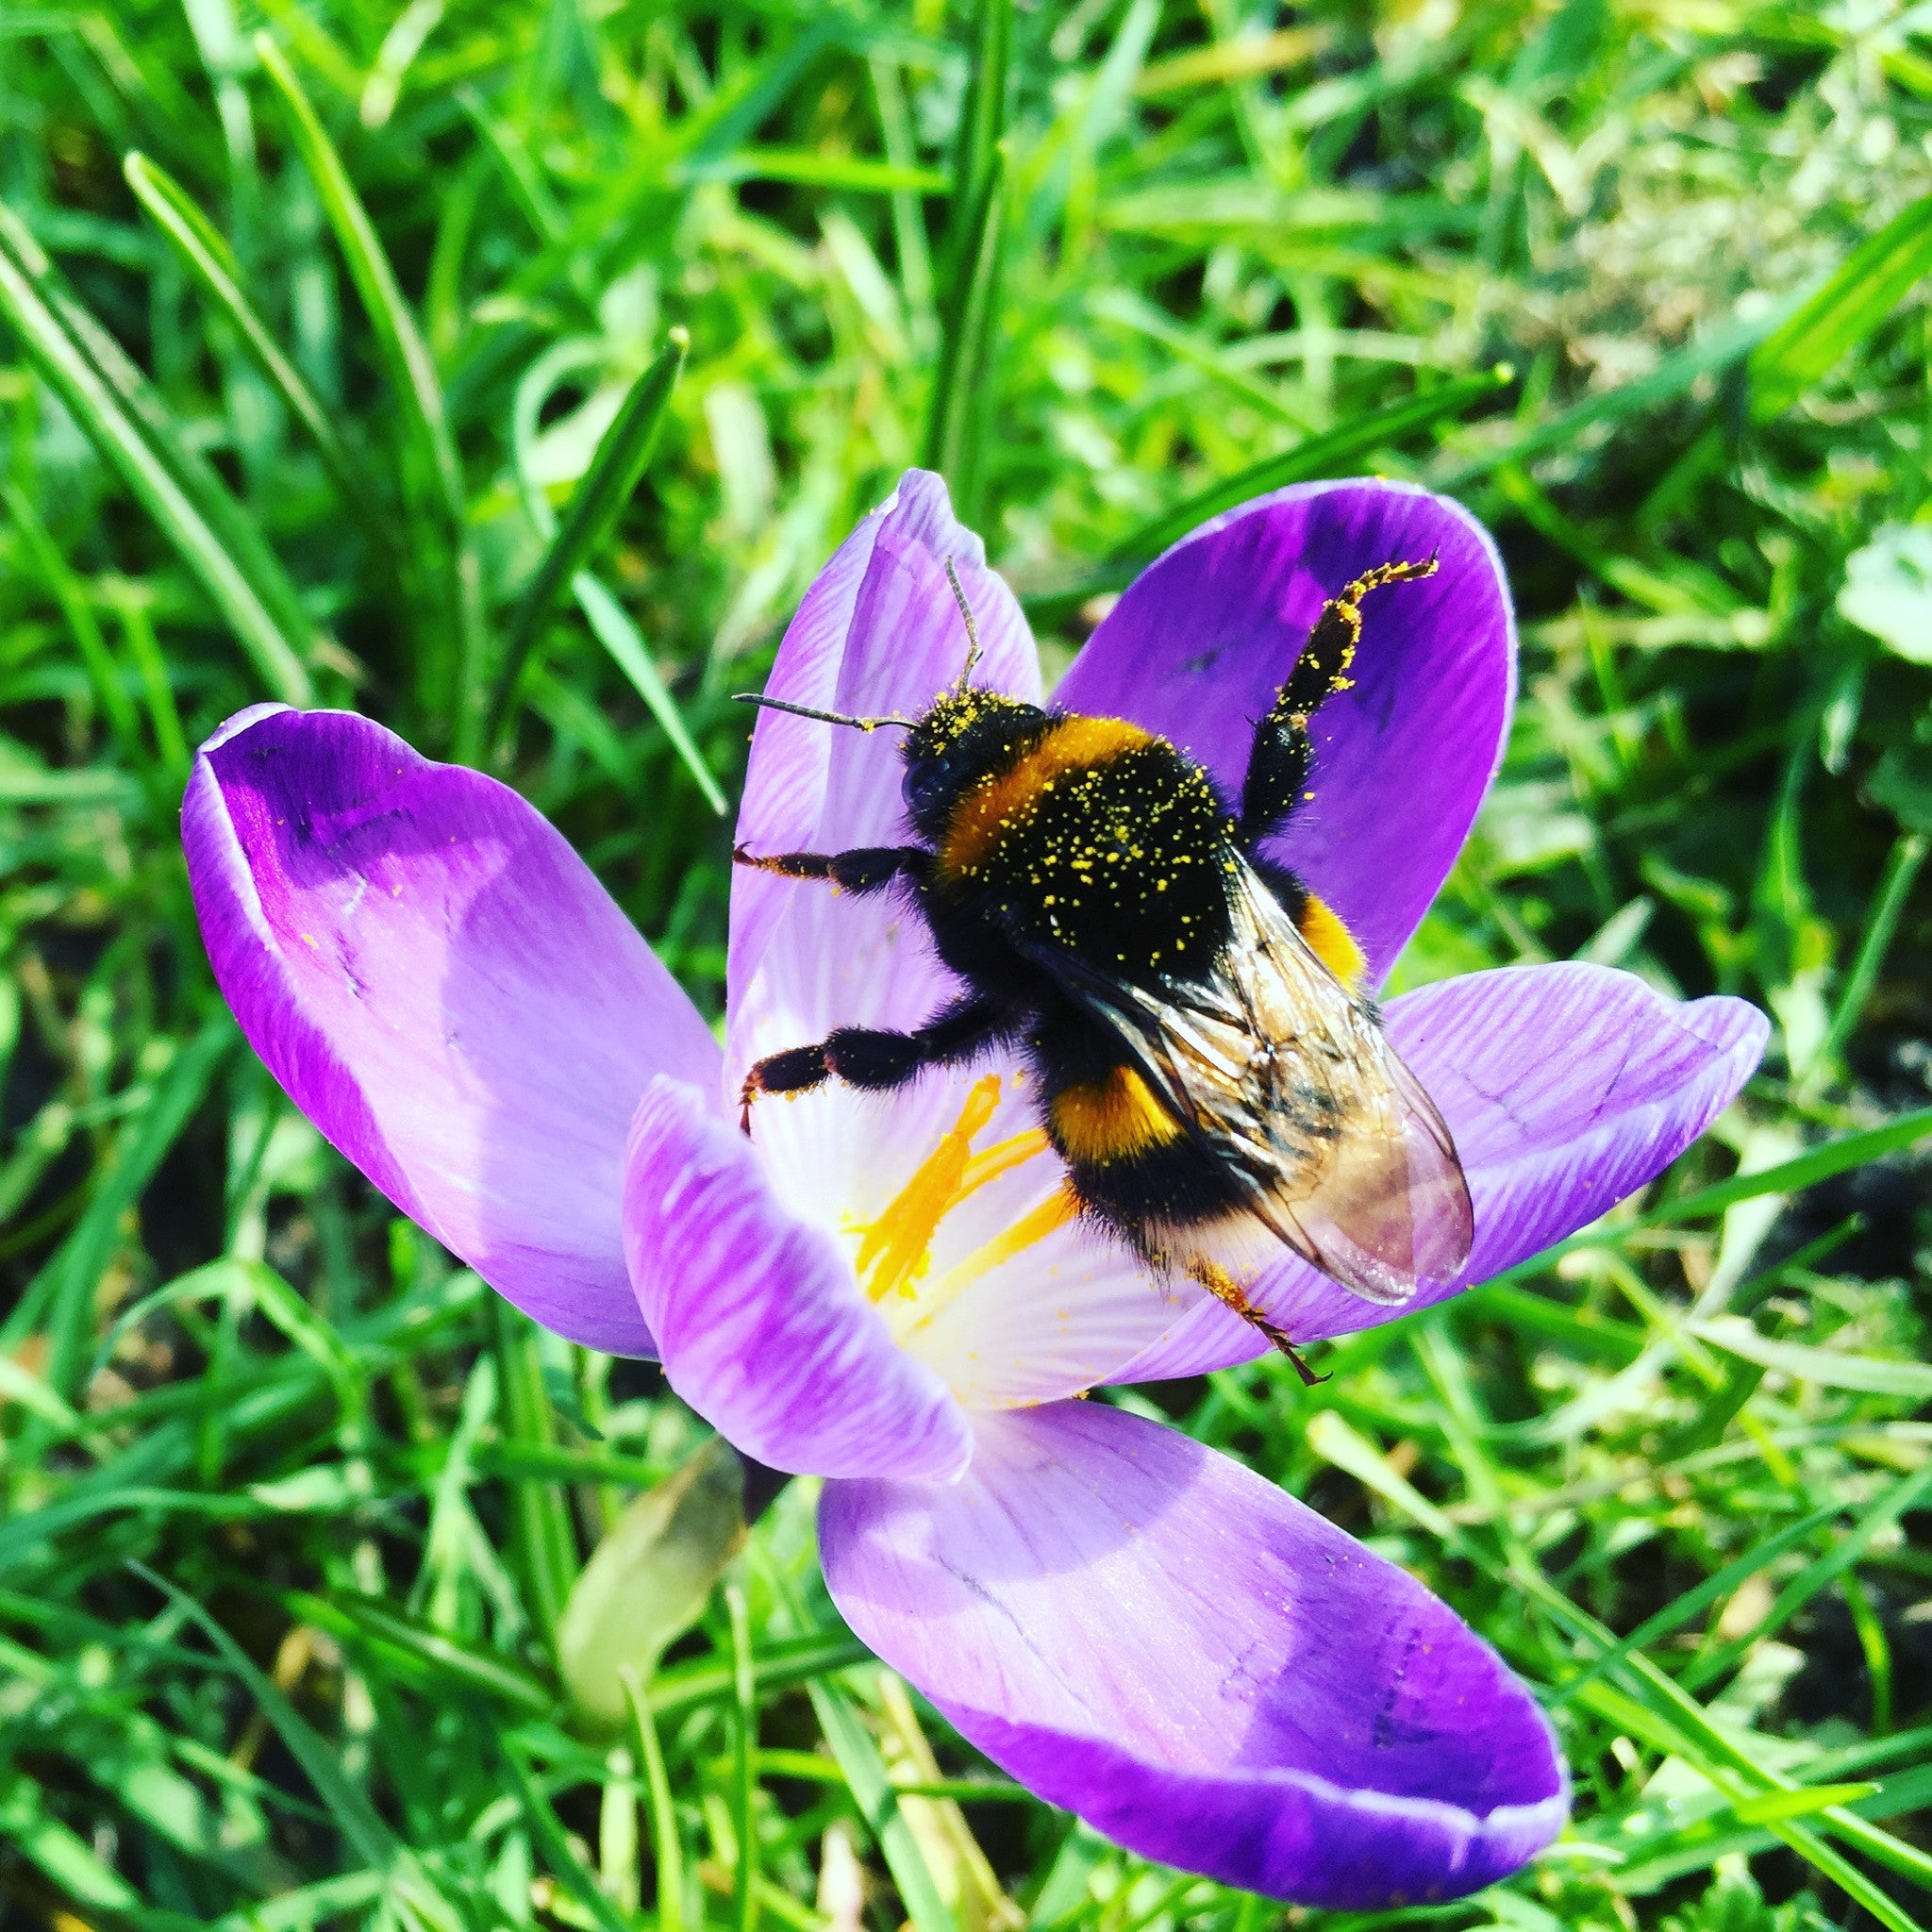 Bumblebee foraging pollen from an open Crocus flower